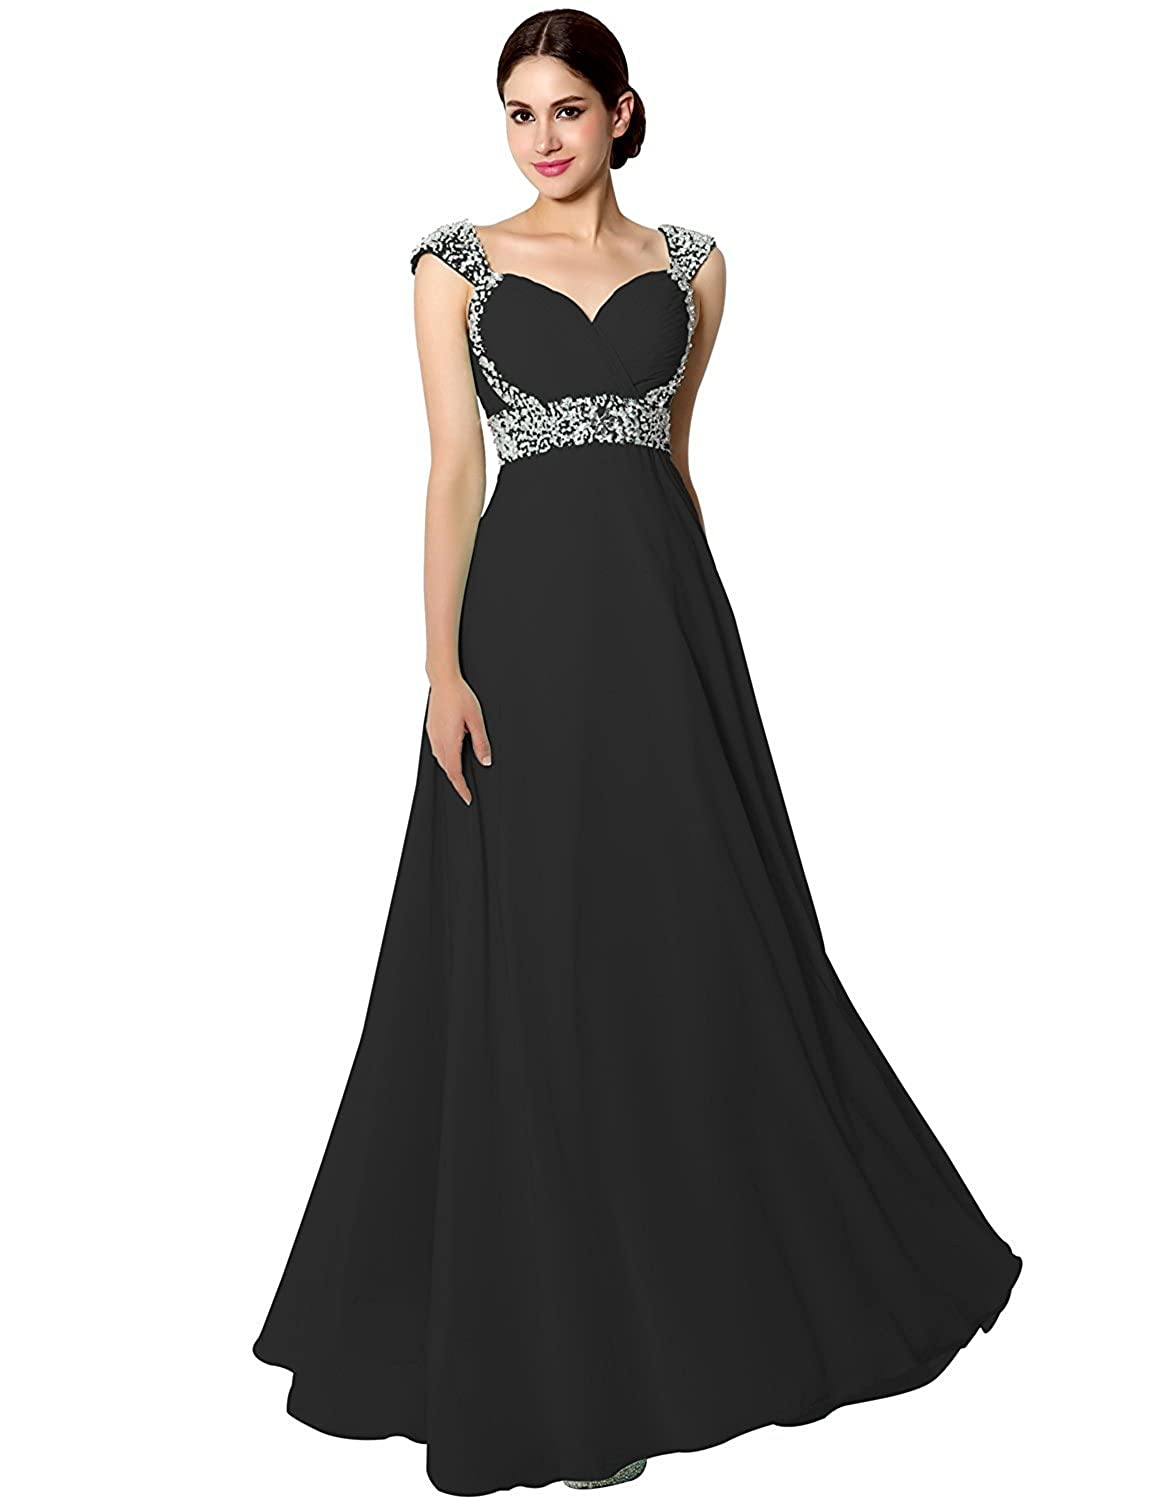 1950s Bridesmaid Dresses | 50s Bridesmaid Dresses Sarahbridal Womens Beaded Prom Dress Long 2019 Chiffon Bridesmaid Gowns for Wedding $89.90 AT vintagedancer.com